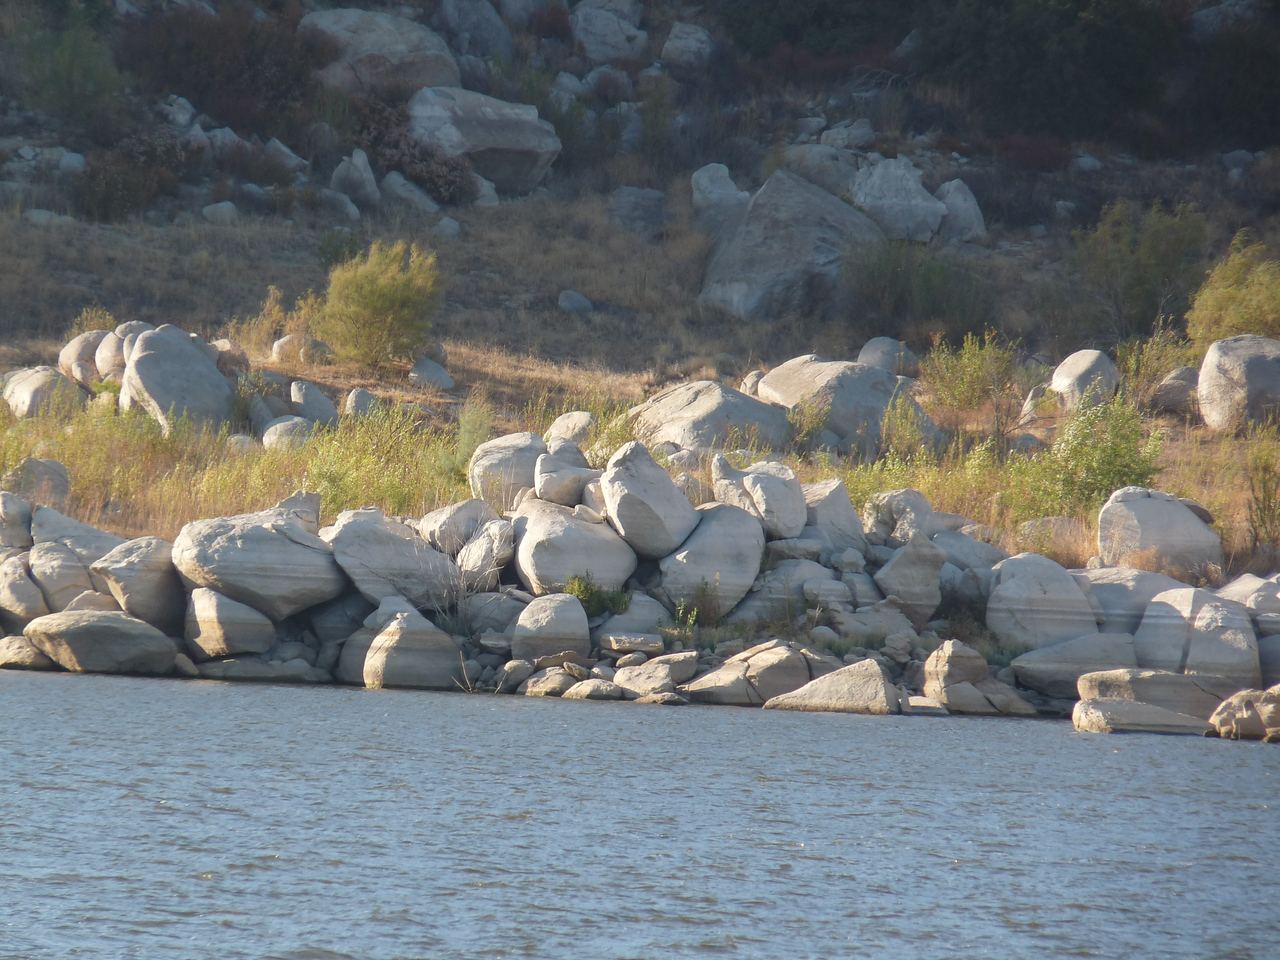 Stripes on rocks across the lake show the relentless drop in the water level.